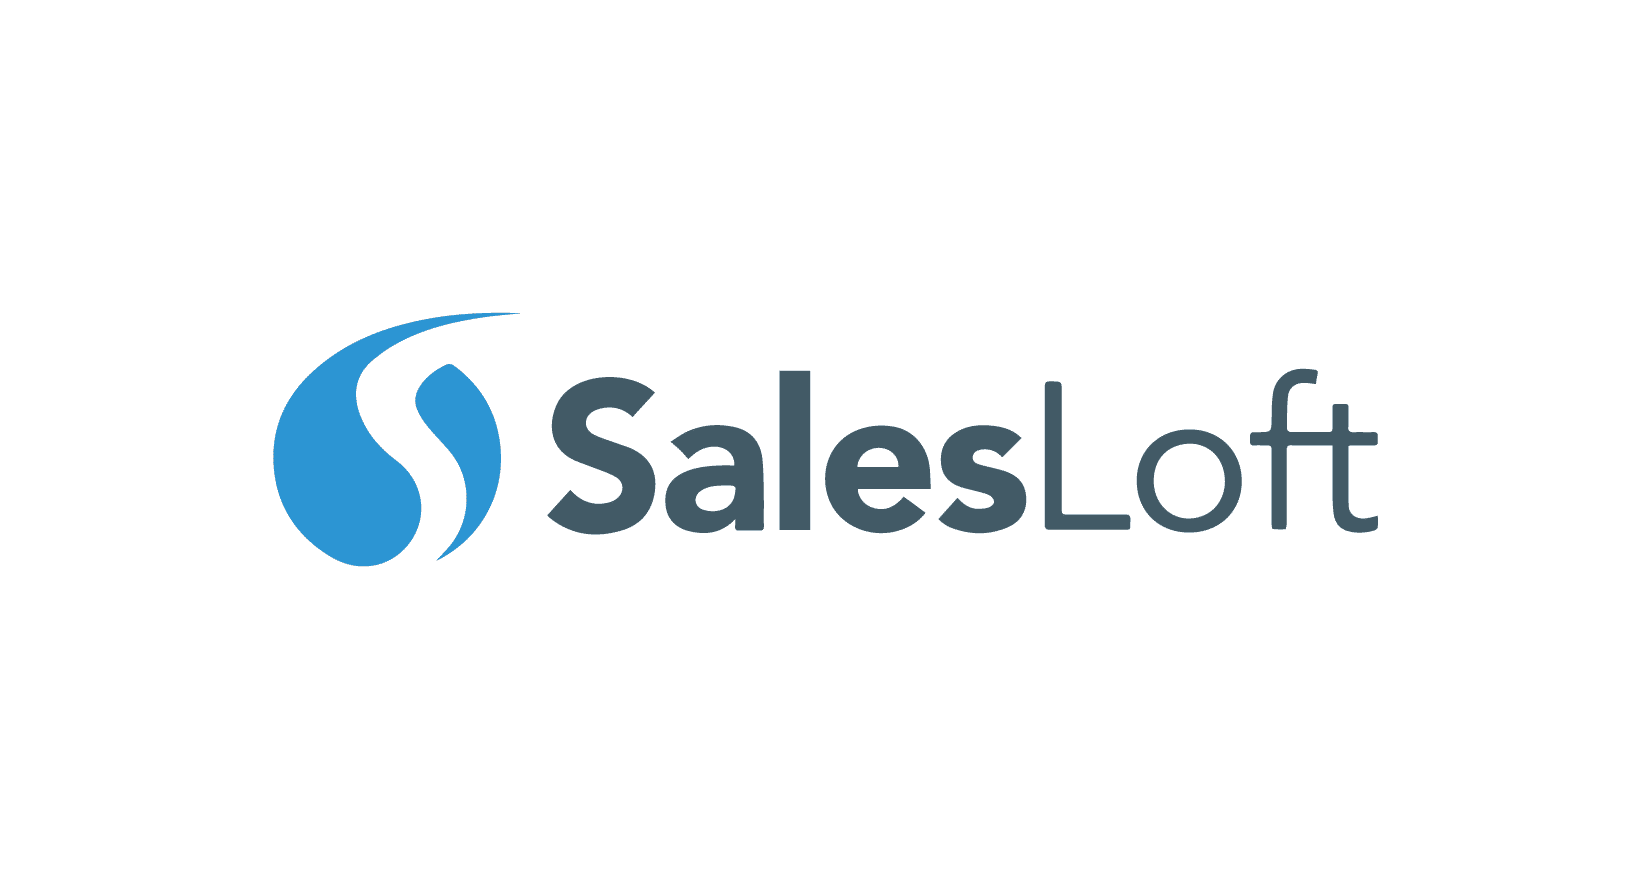 SalesLoft - Sales Engagement Software : SaaSworthy.com